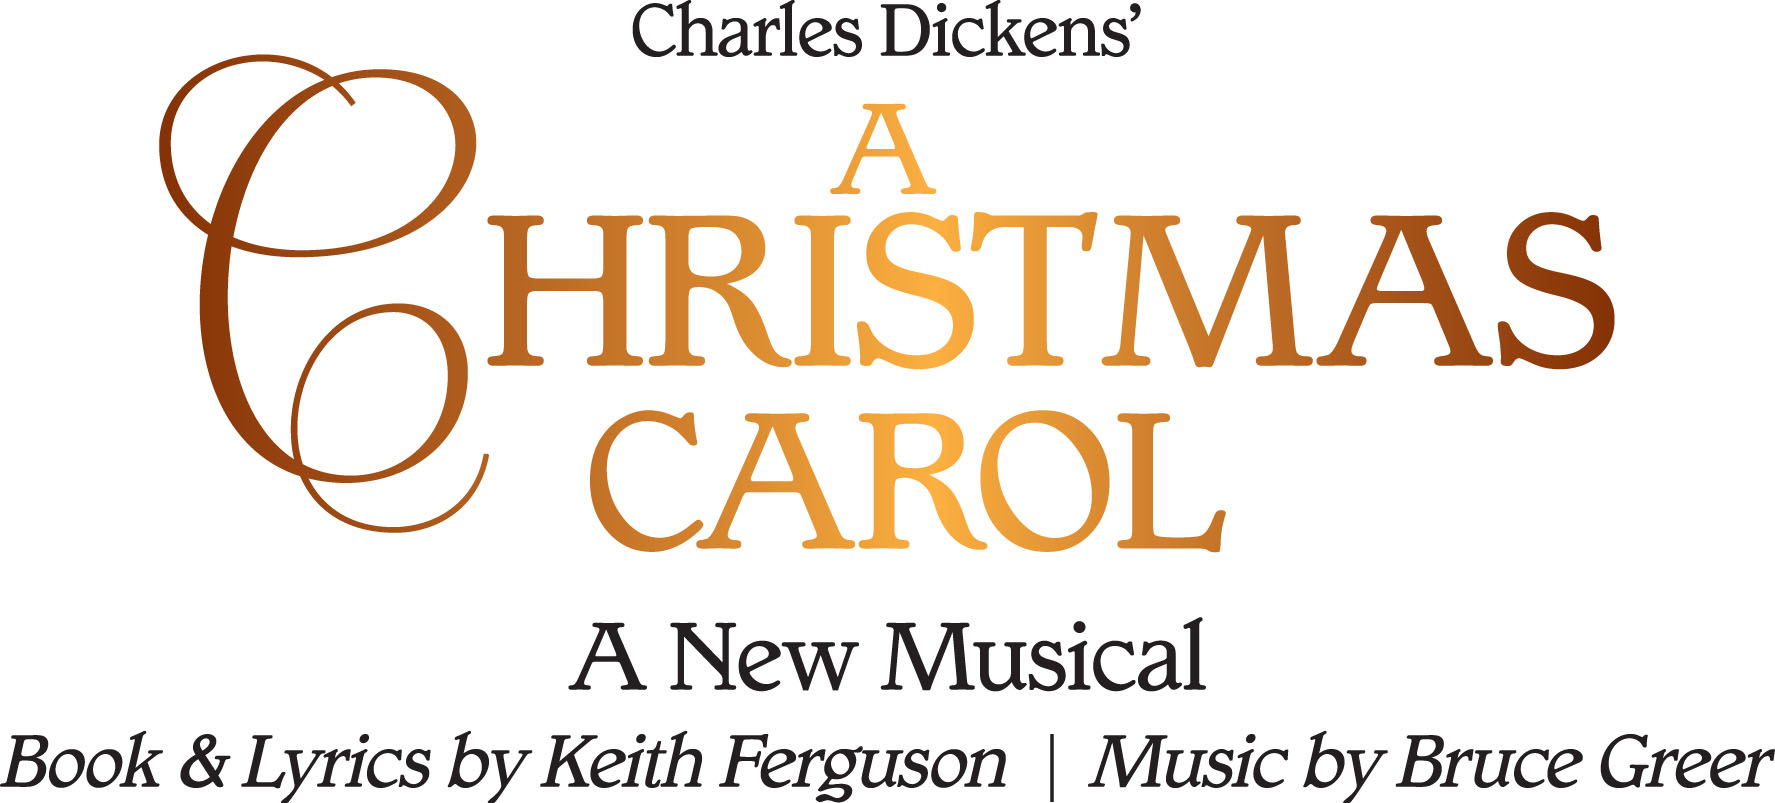 a christmas carol a new musical logo - A Christmas Carol Full Text